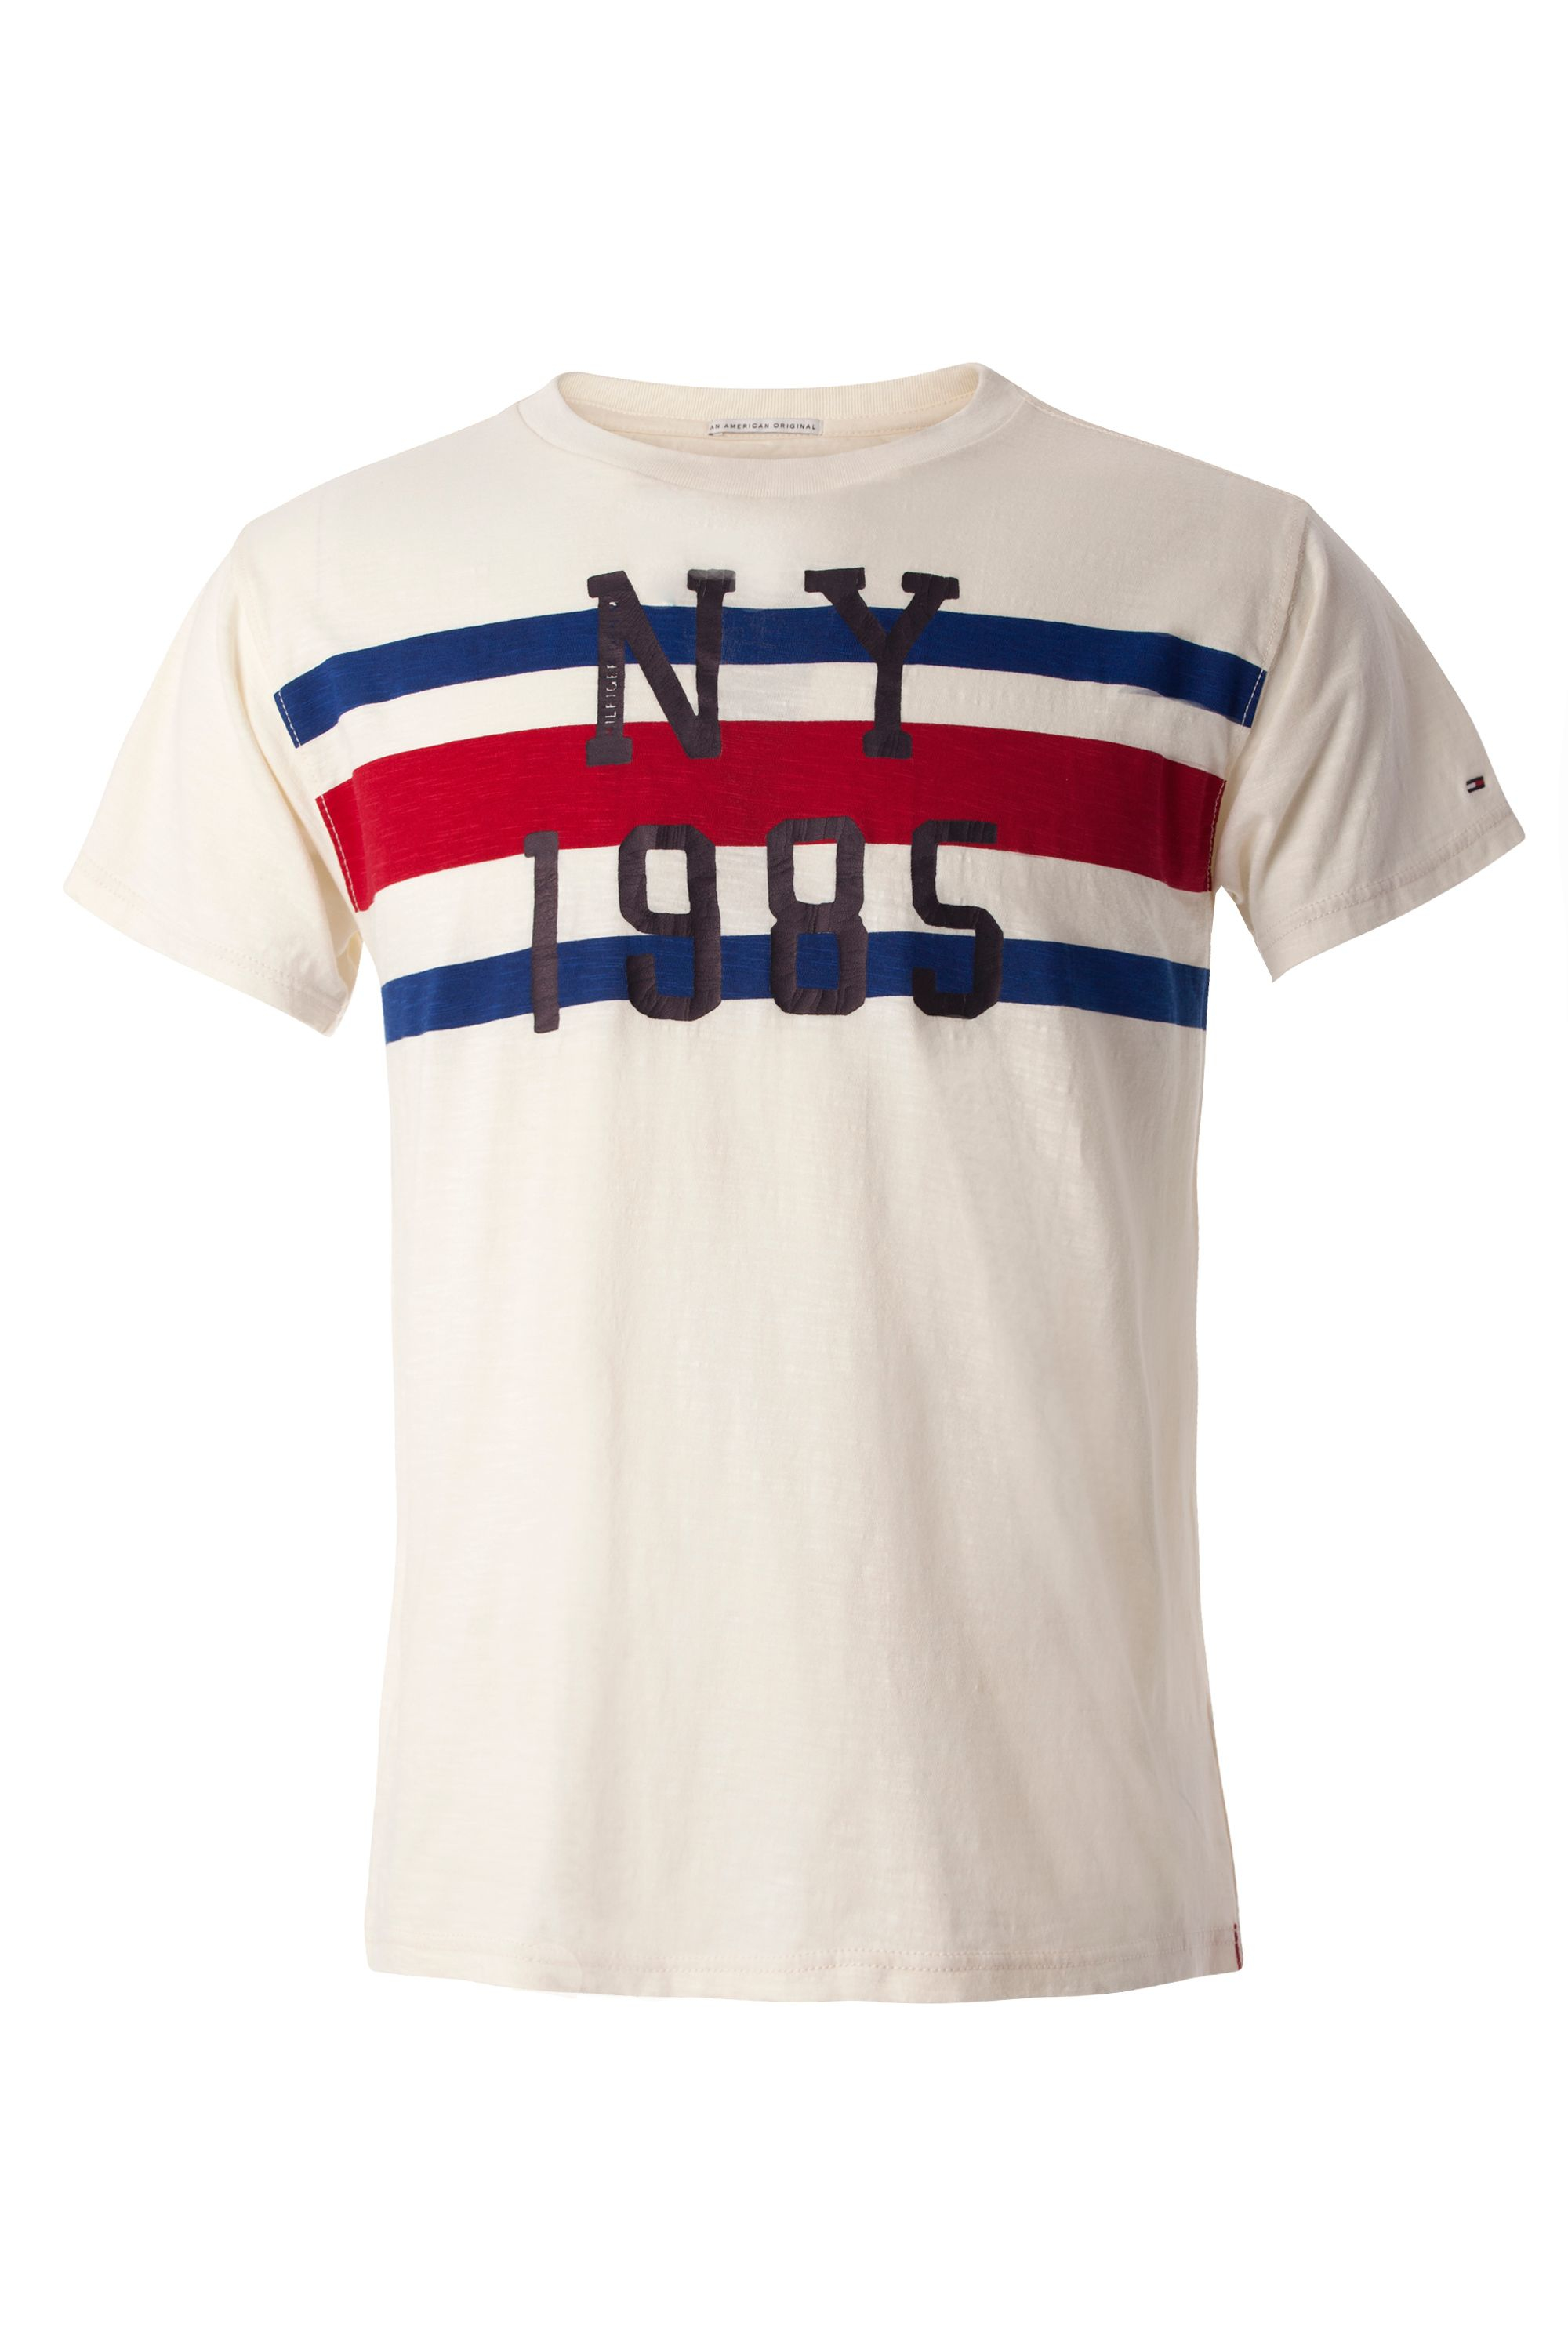 tommy hilfiger basic slub t shirt in white for men lyst. Black Bedroom Furniture Sets. Home Design Ideas